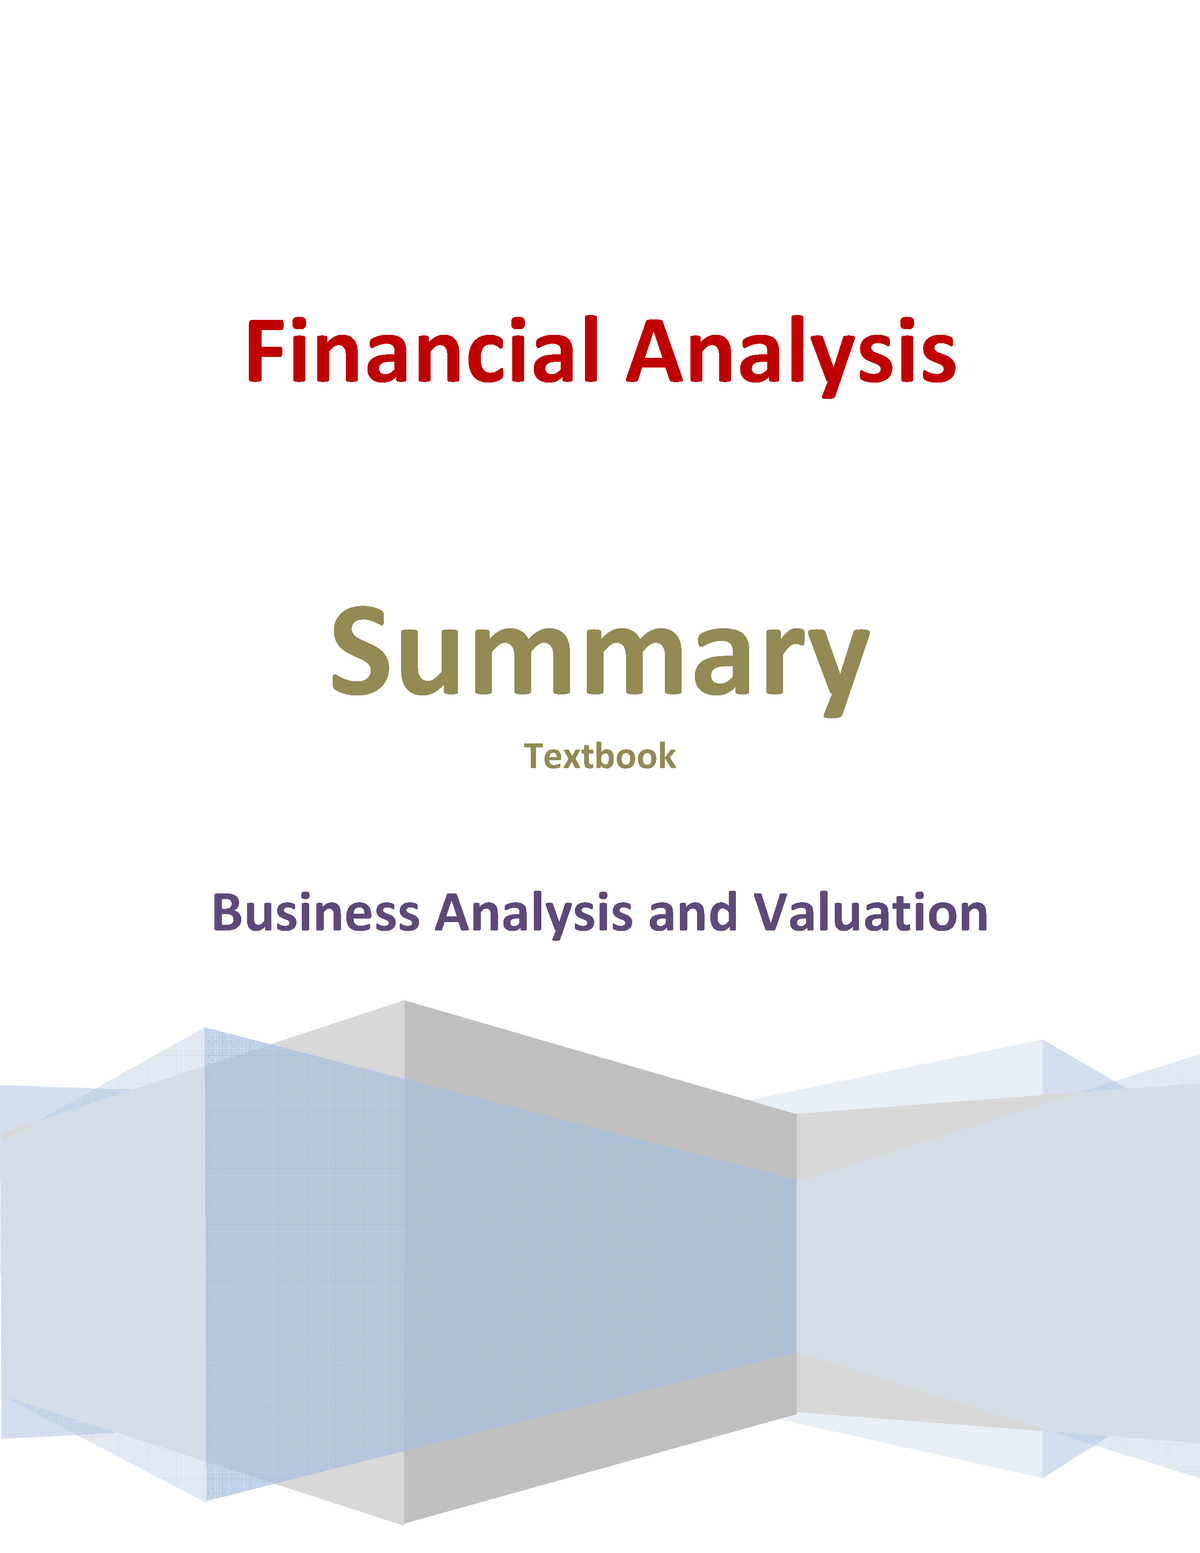 Summary Business Analysis and Valuation, complete, chapters